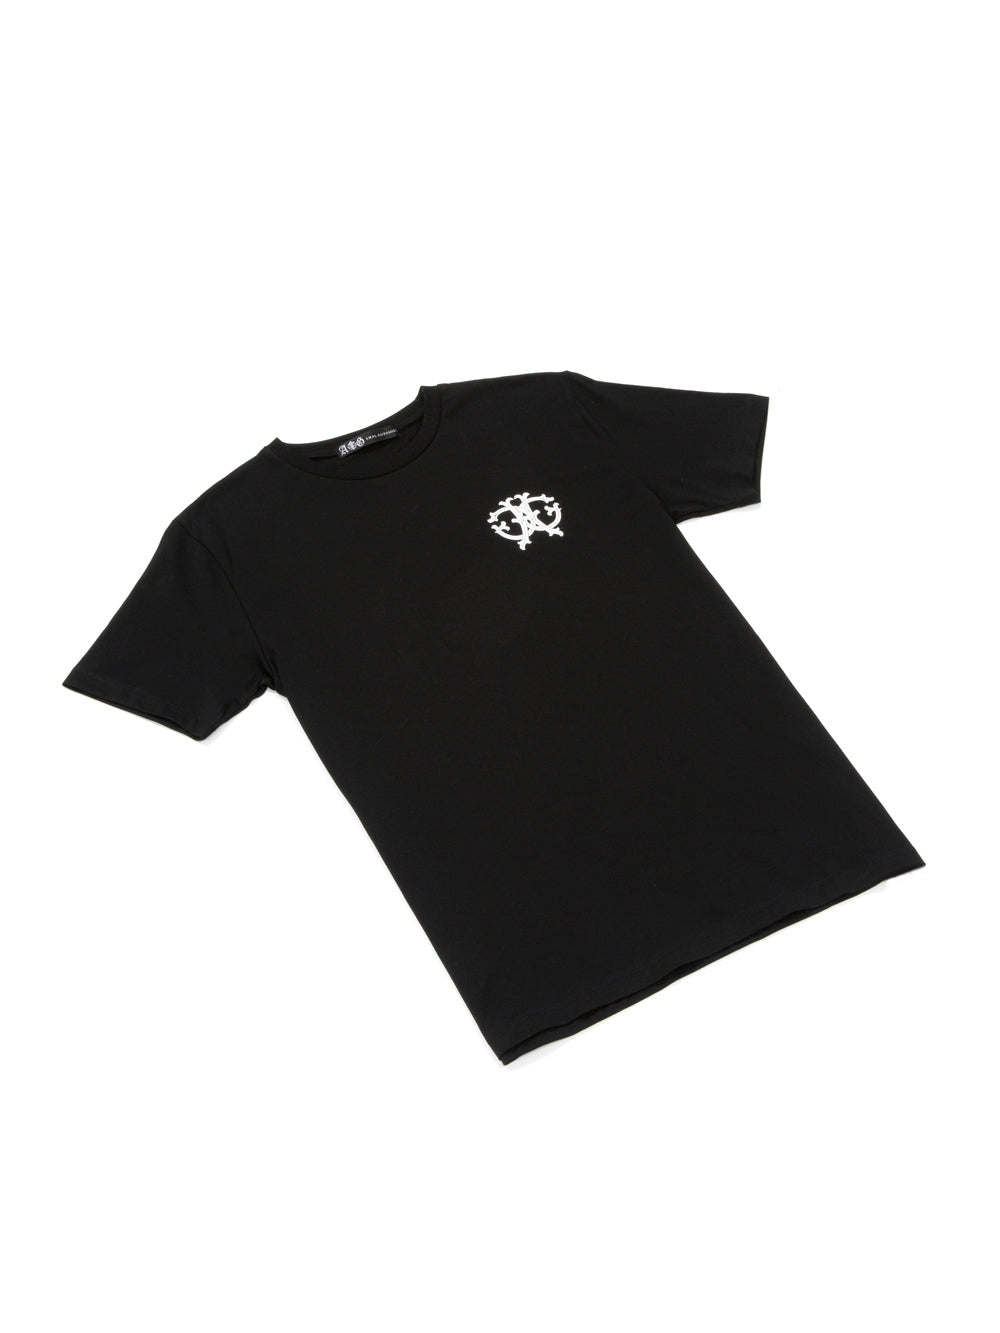 FDL CROSS T-SHIRT